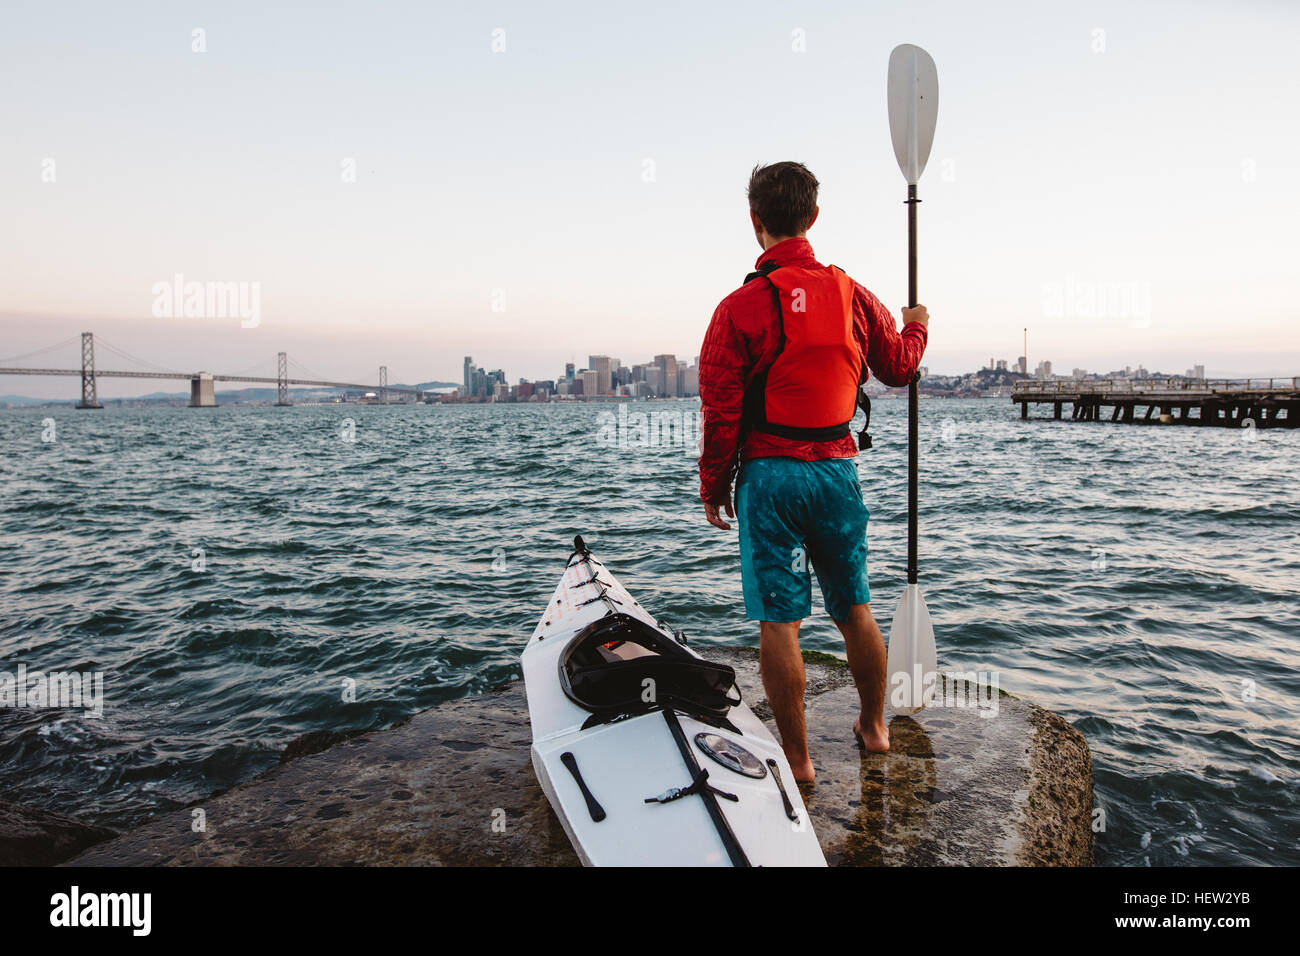 Man with kayak and oar, looking out to sea, San Francisco, California, USA - Stock Image